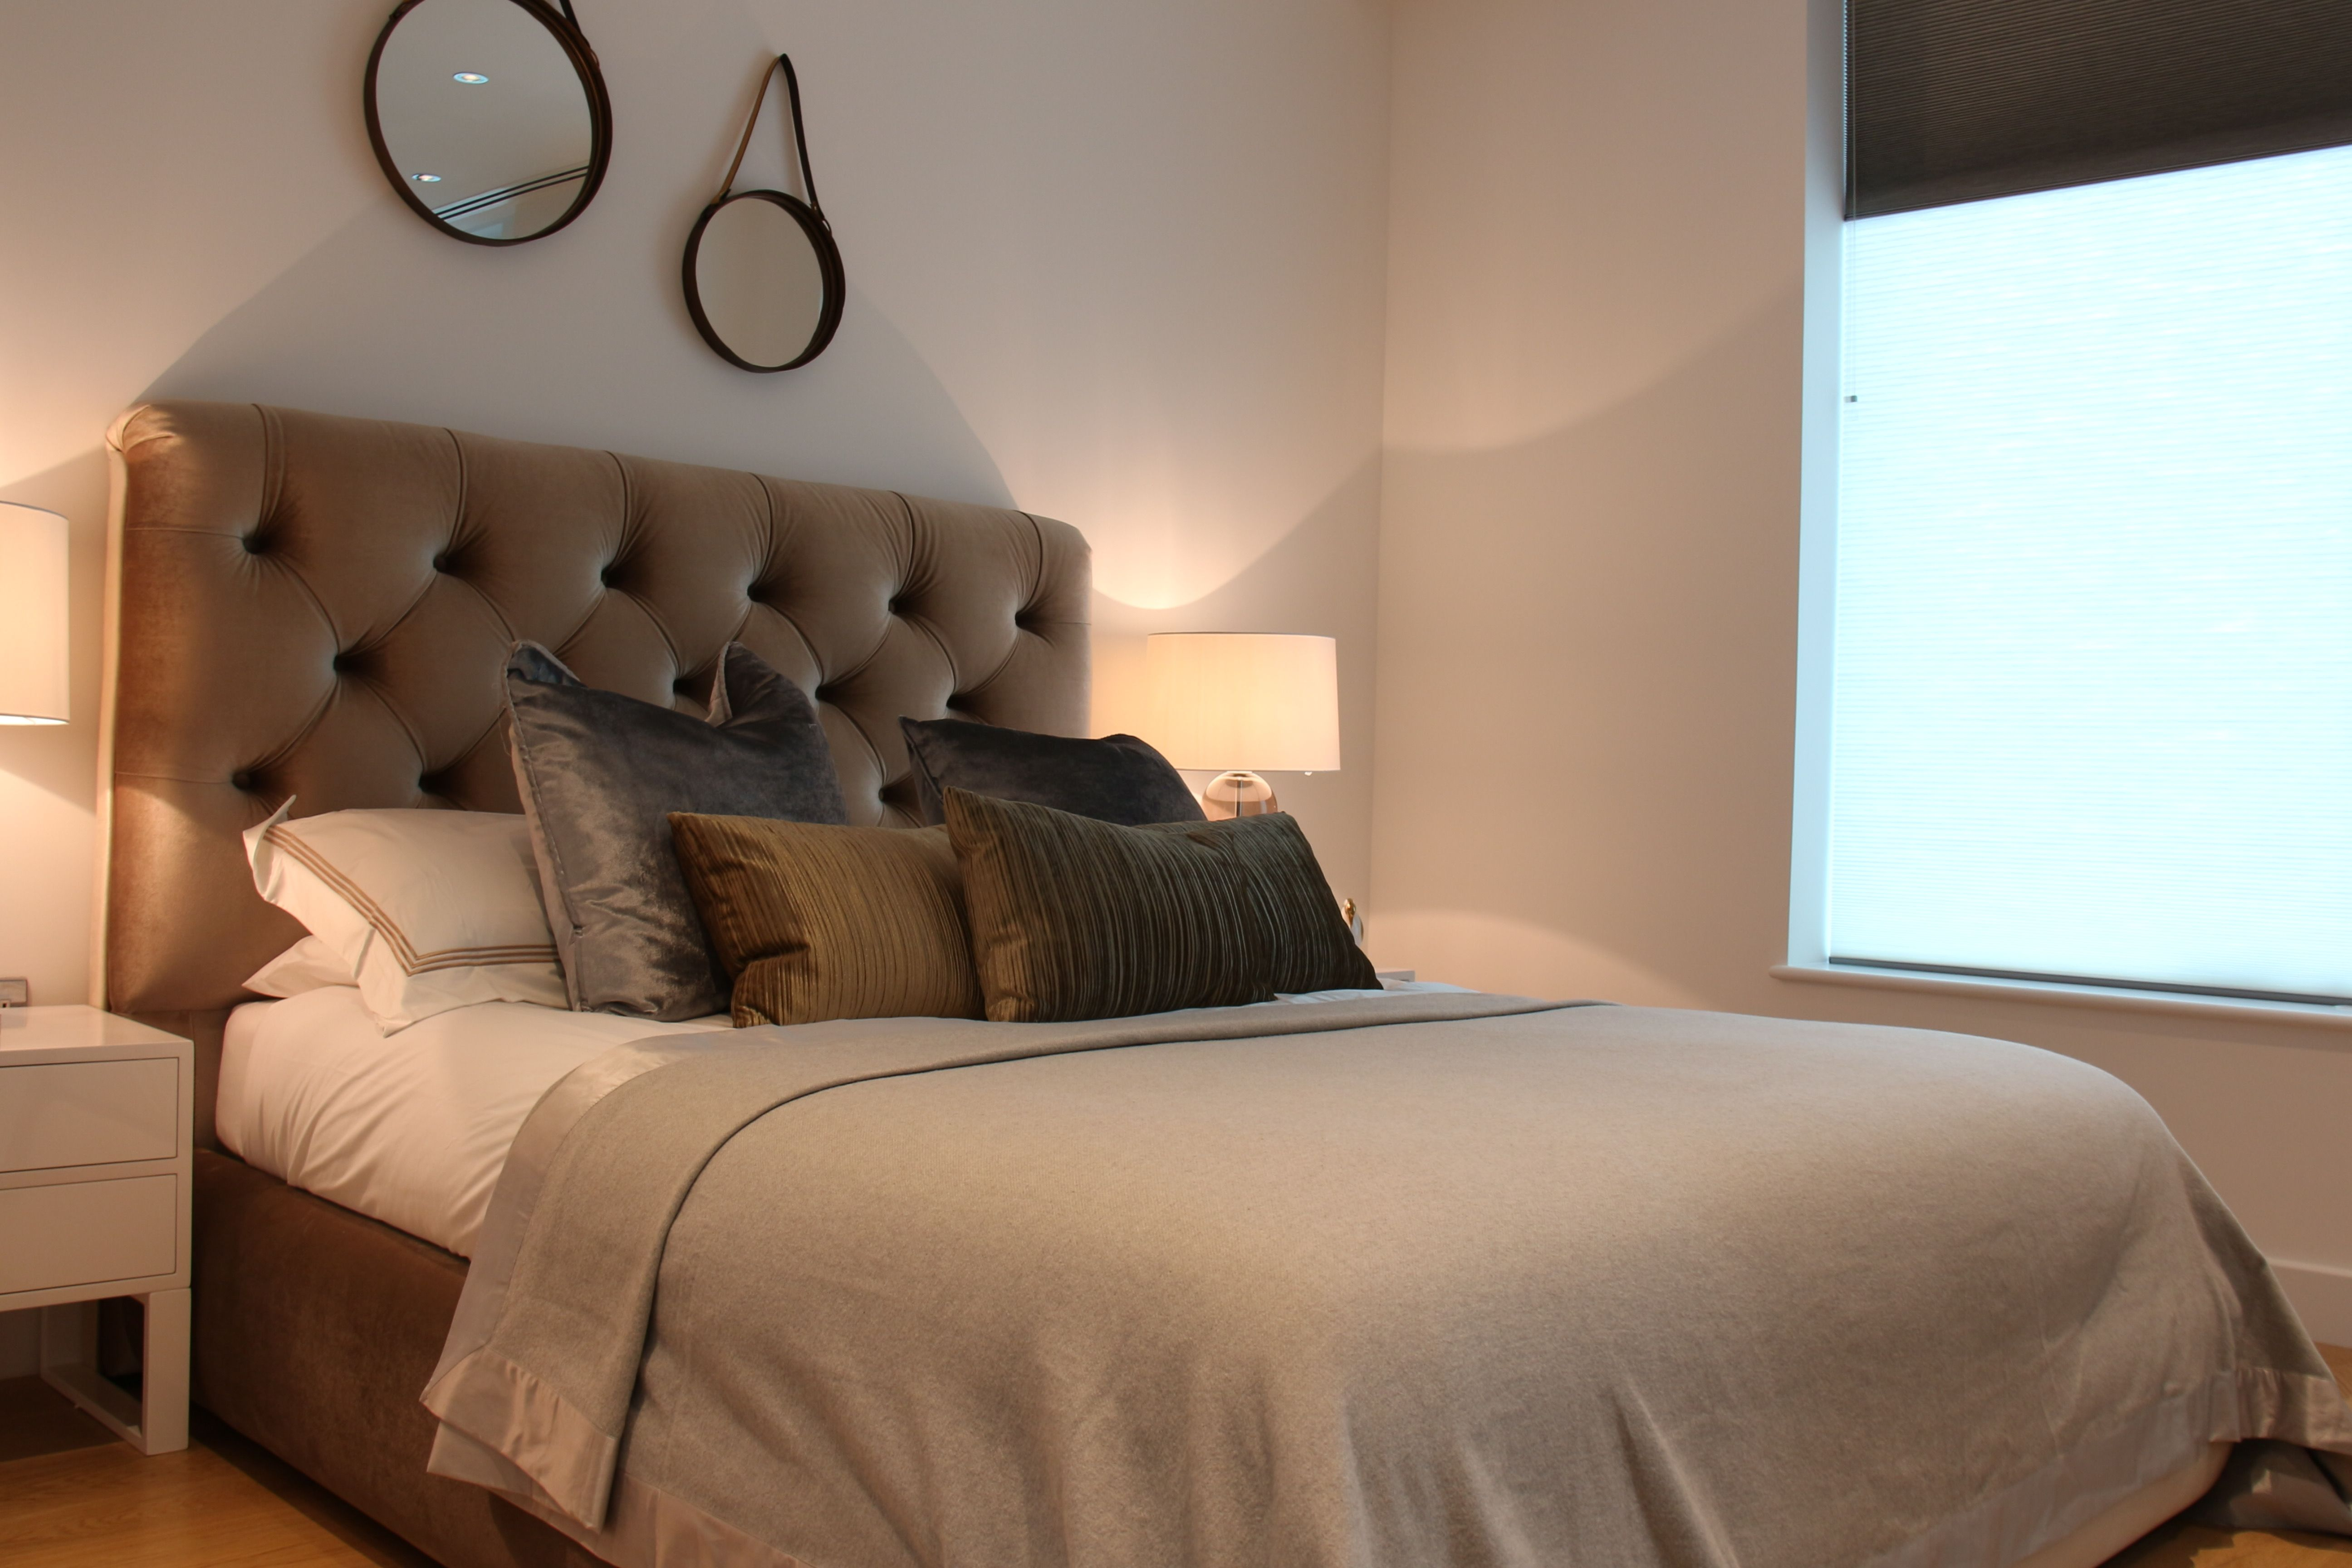 Deeppadded upholstery and plush pillows how to divide your